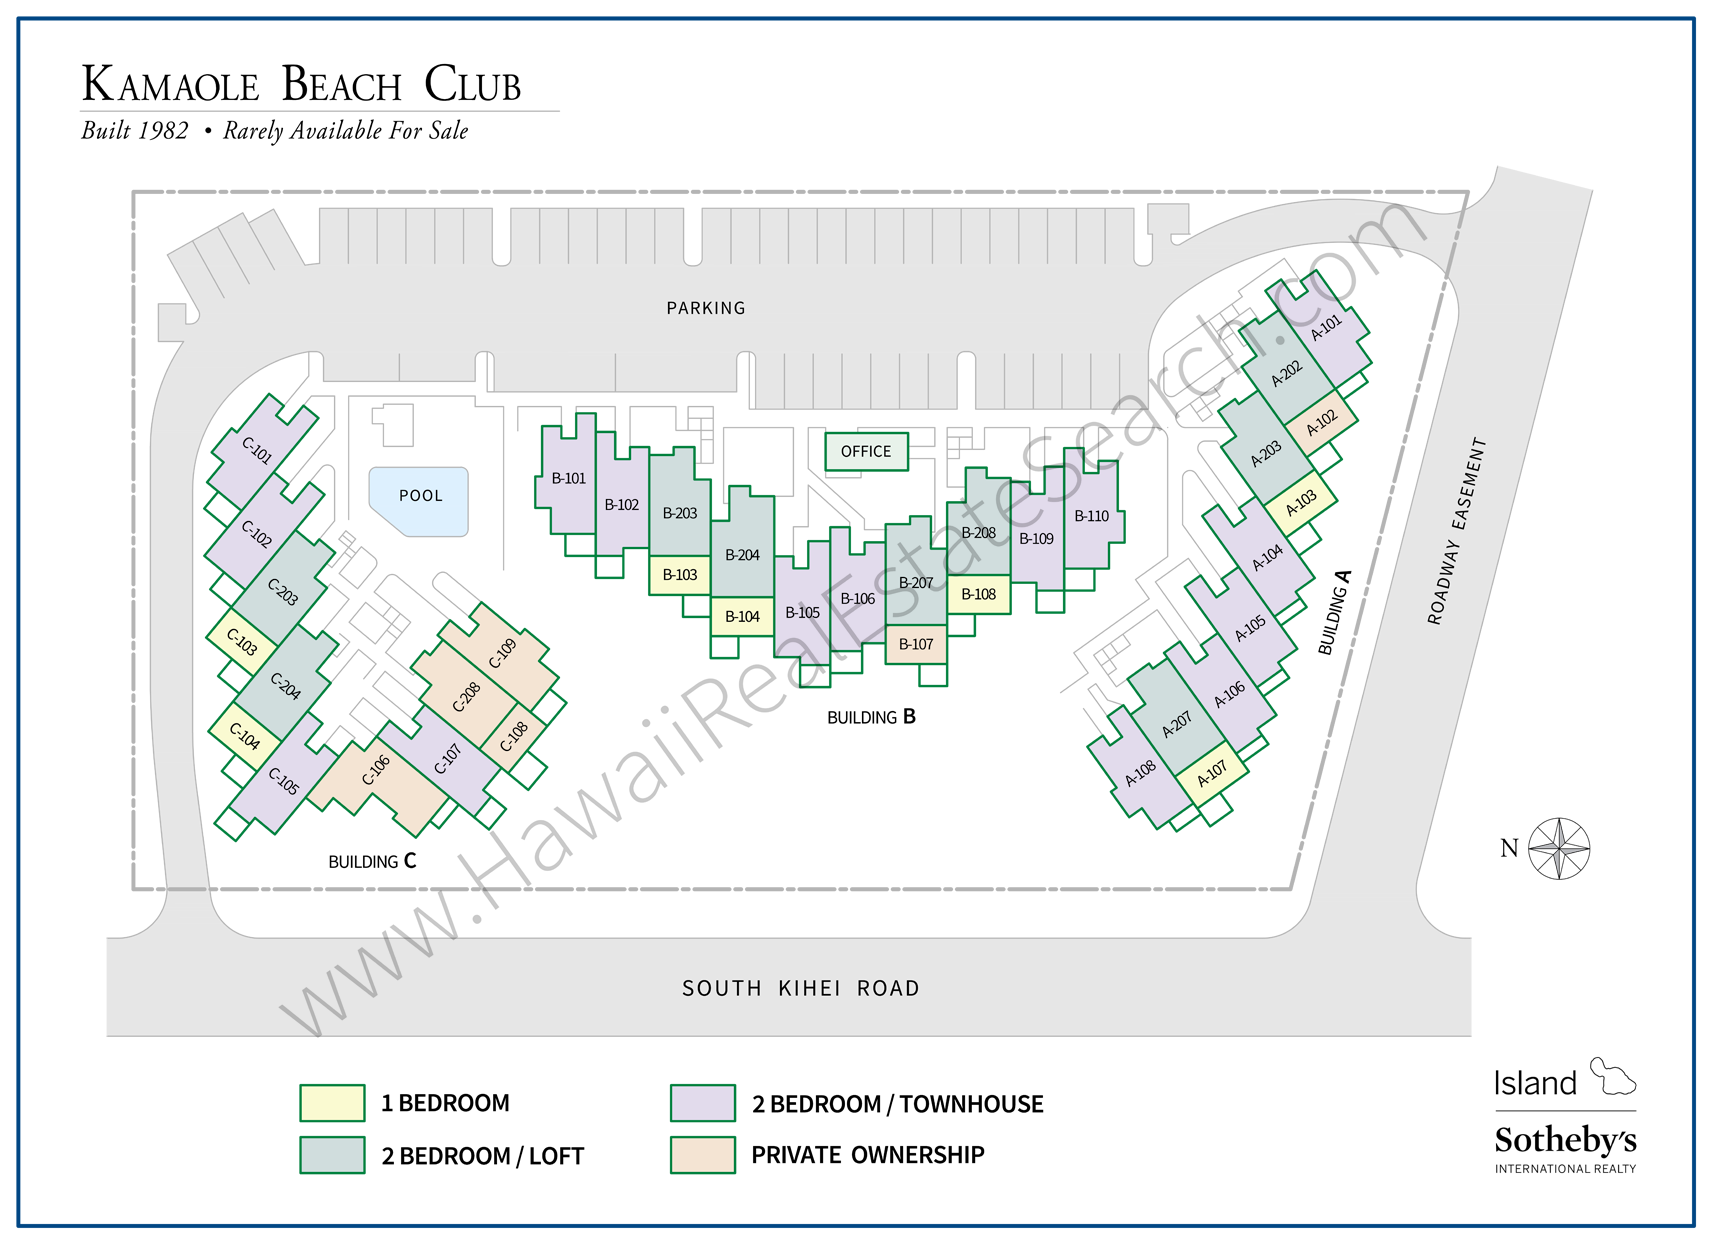 Kamaole Beach Club Map